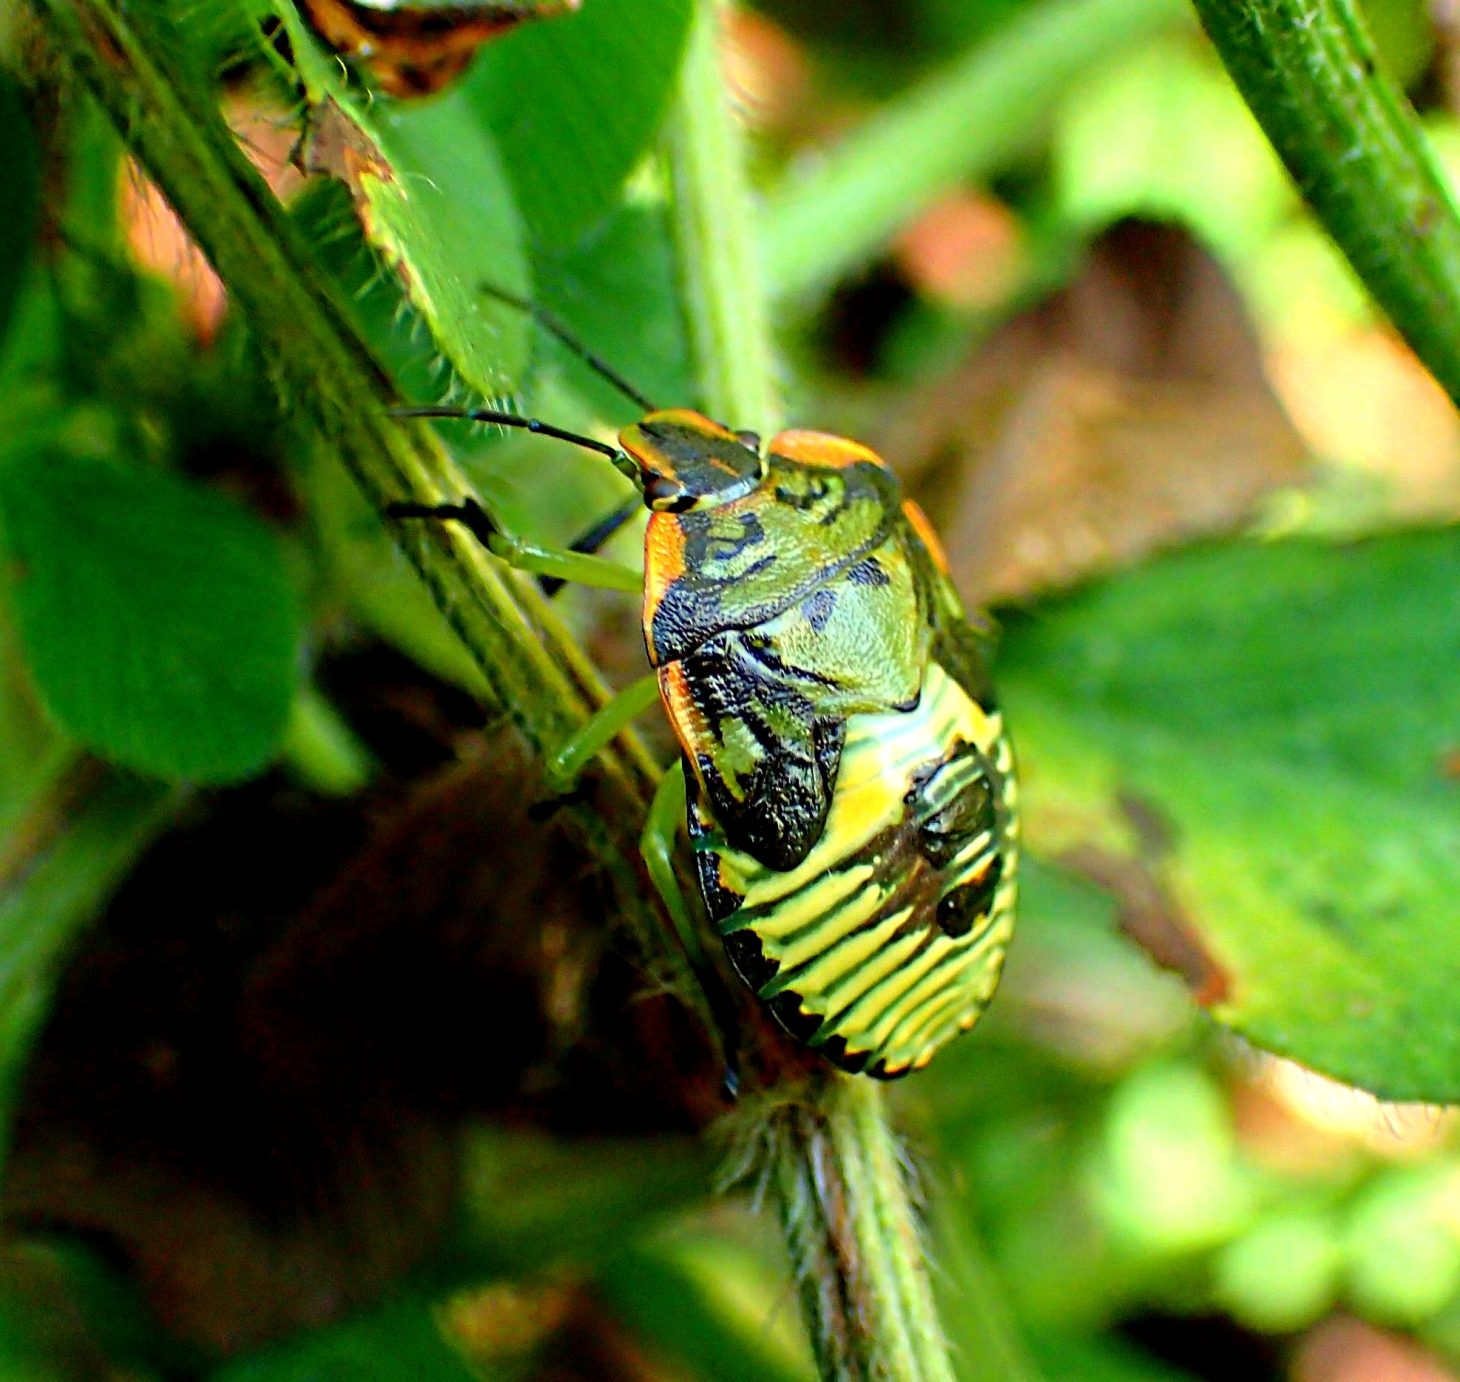 A very elusive and fast running bug!  Photo by Thomas Peace 2014